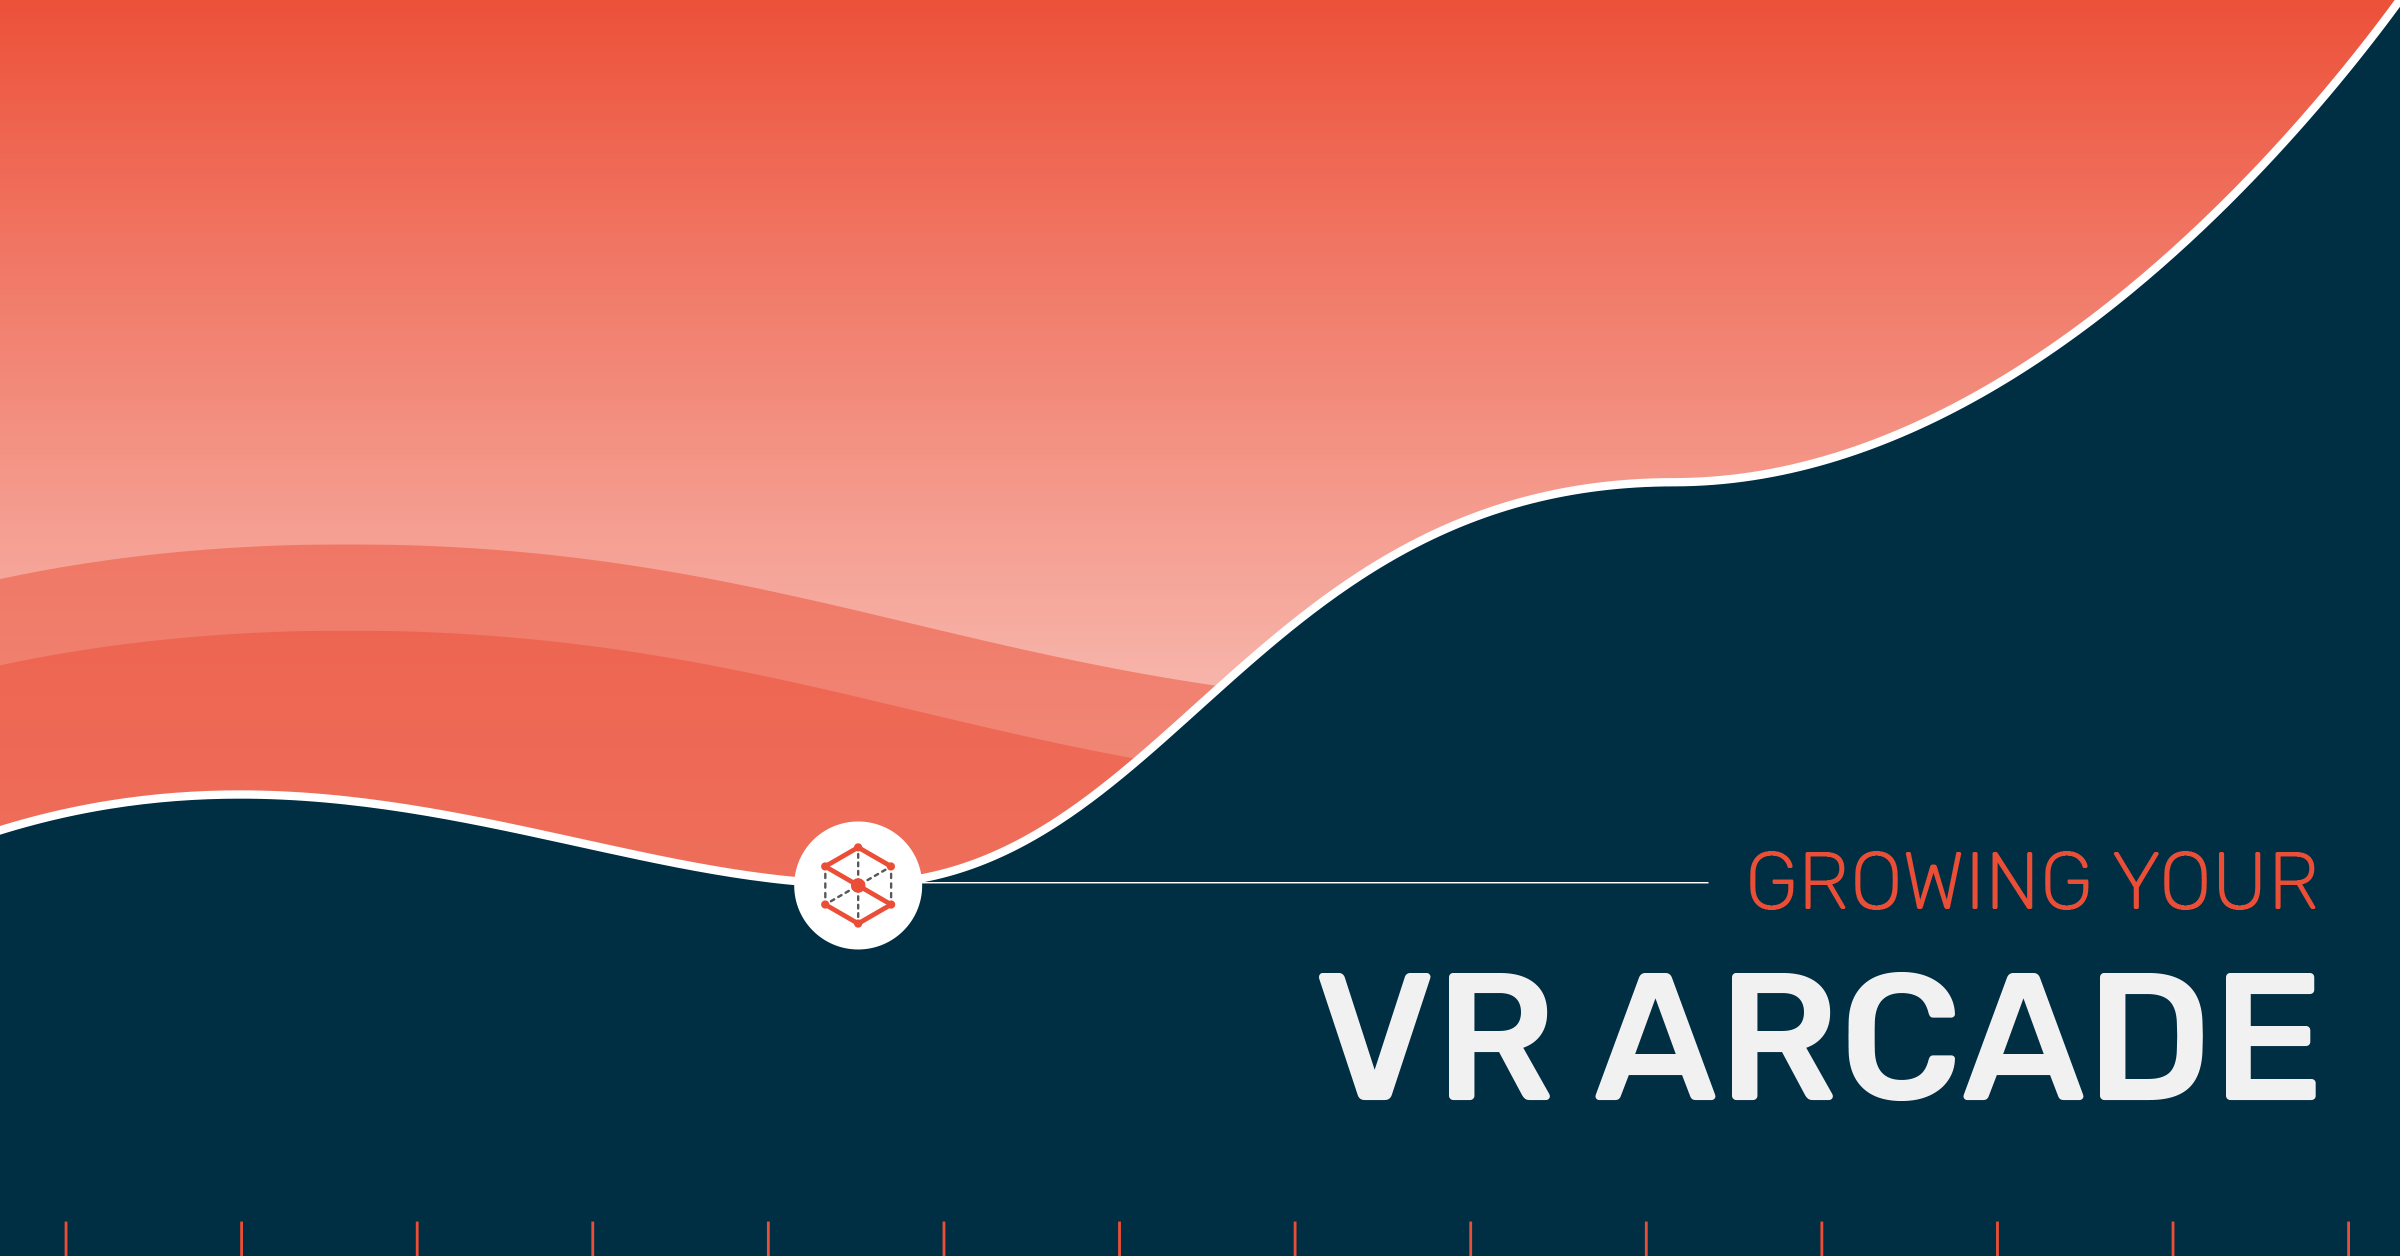 Growing-Your-VR-Arcade.png